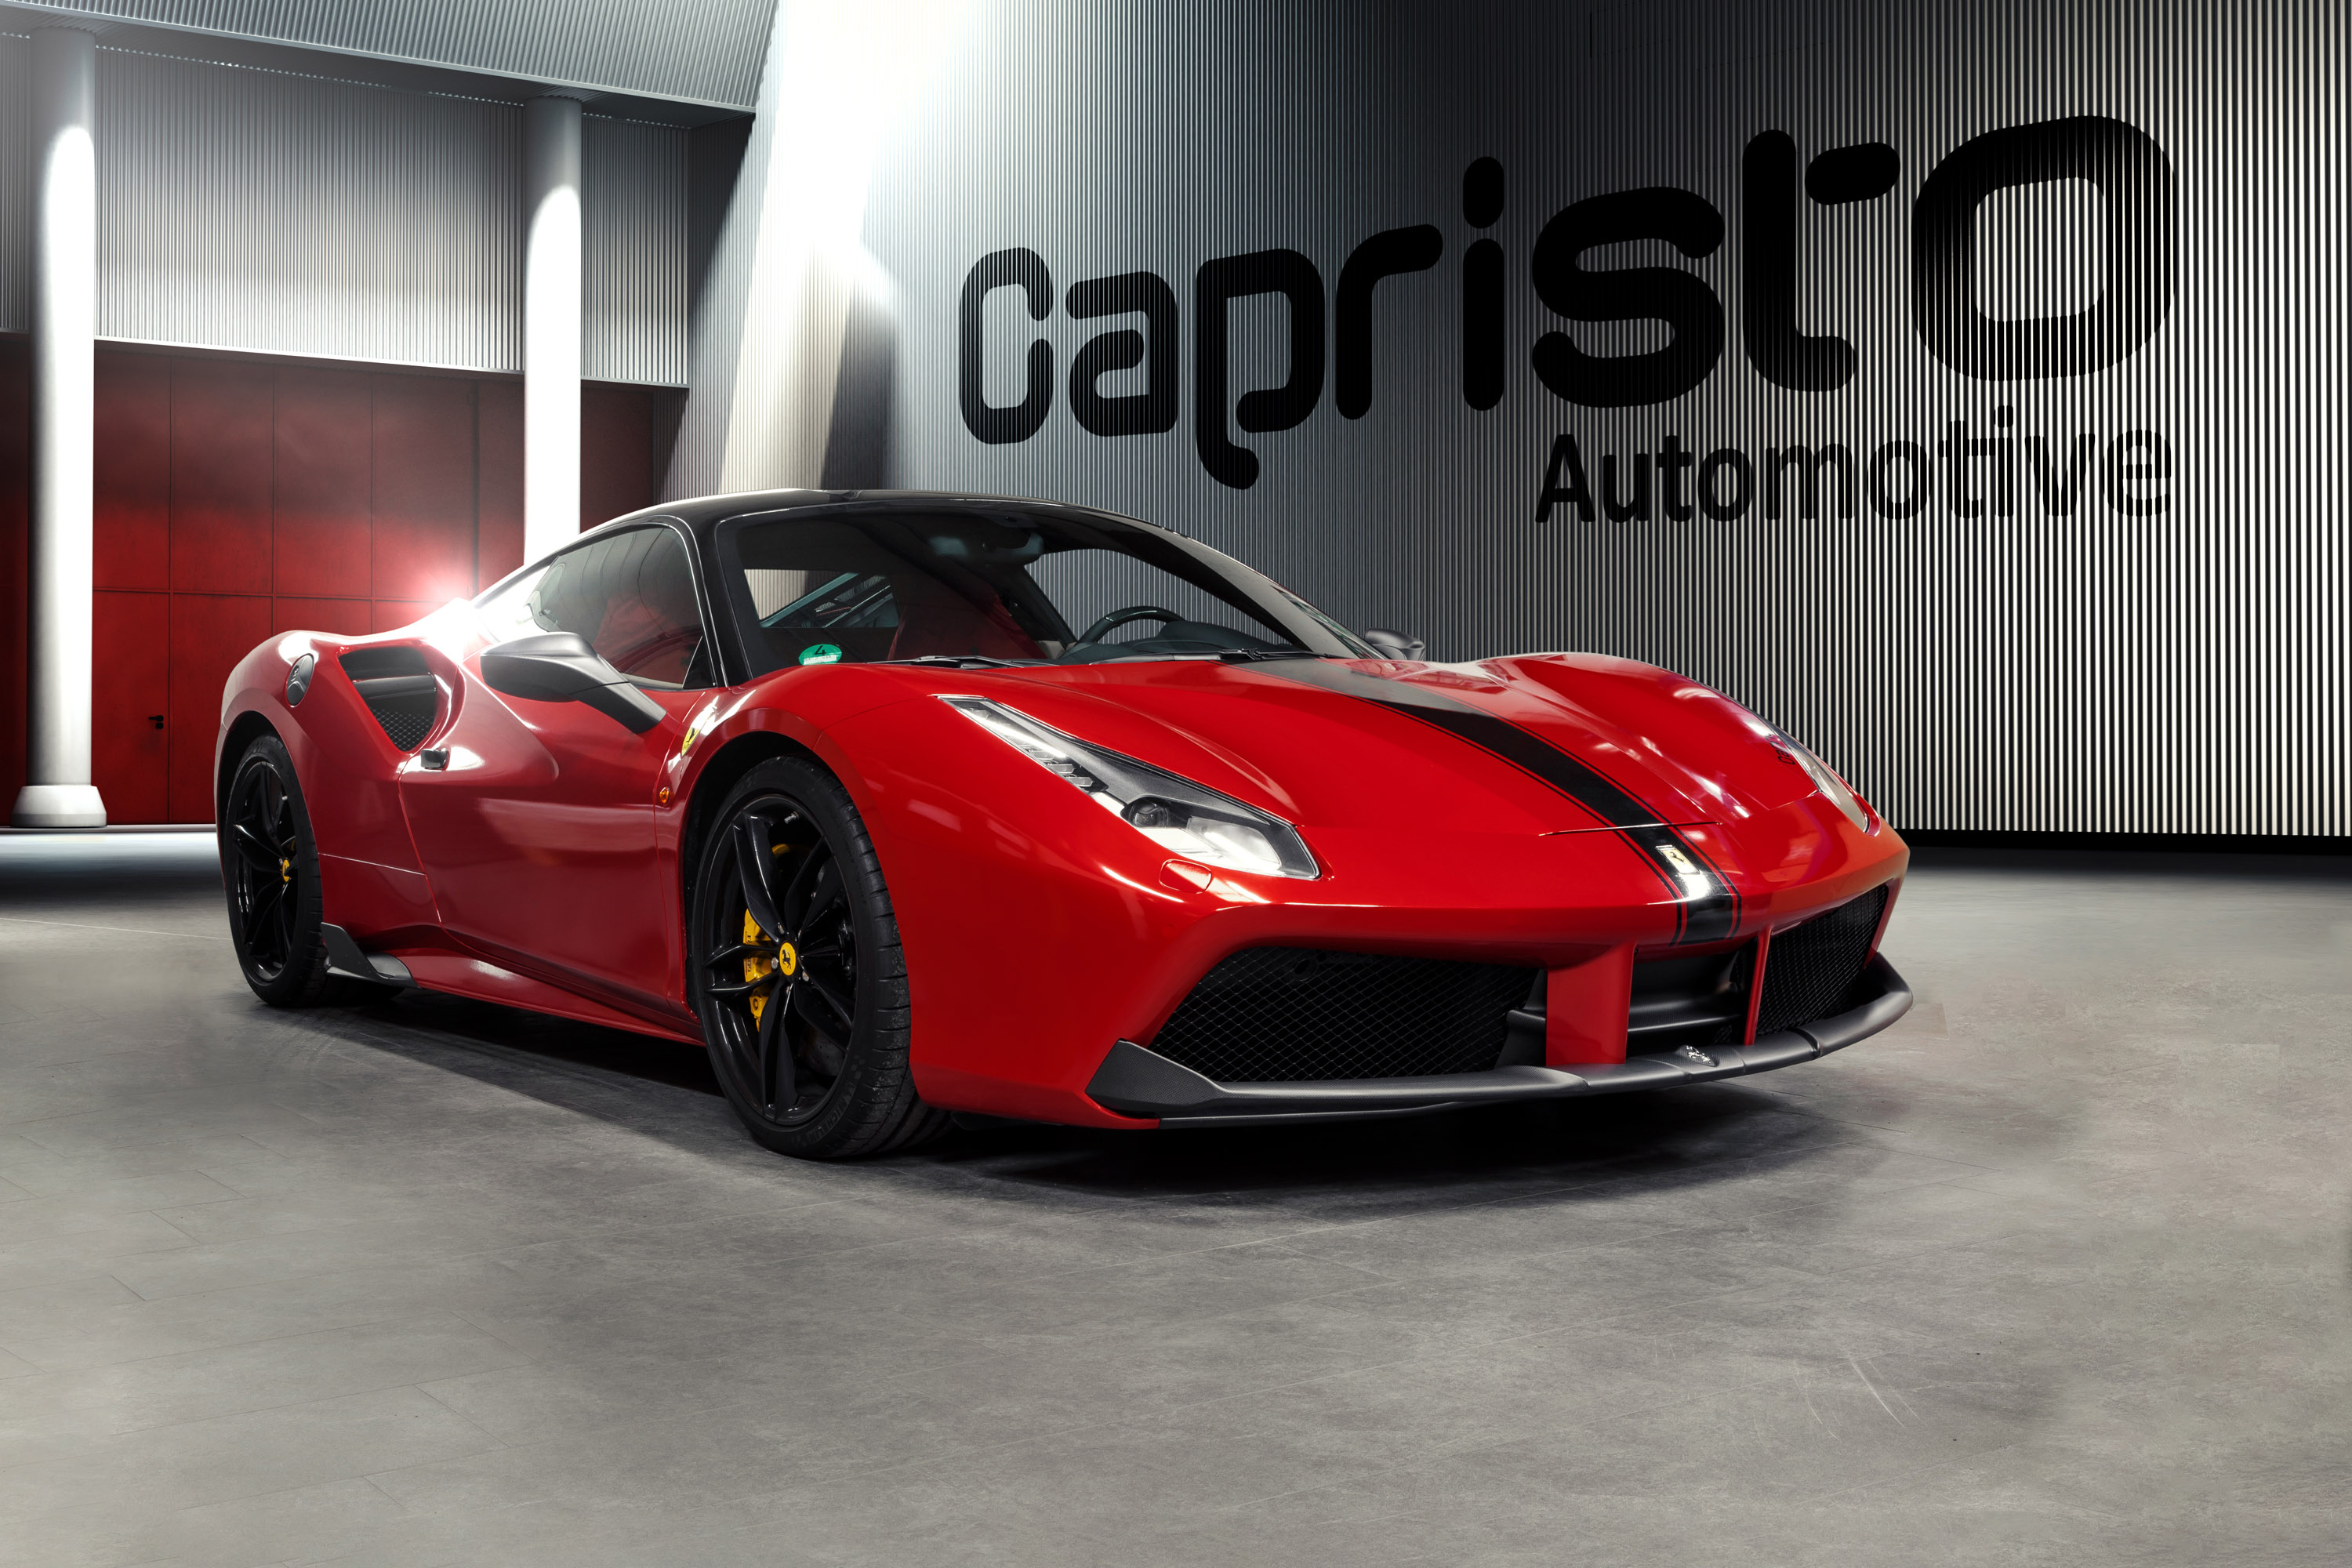 2016-capristo-automotive-ferrari-488-gtb-01.jpg